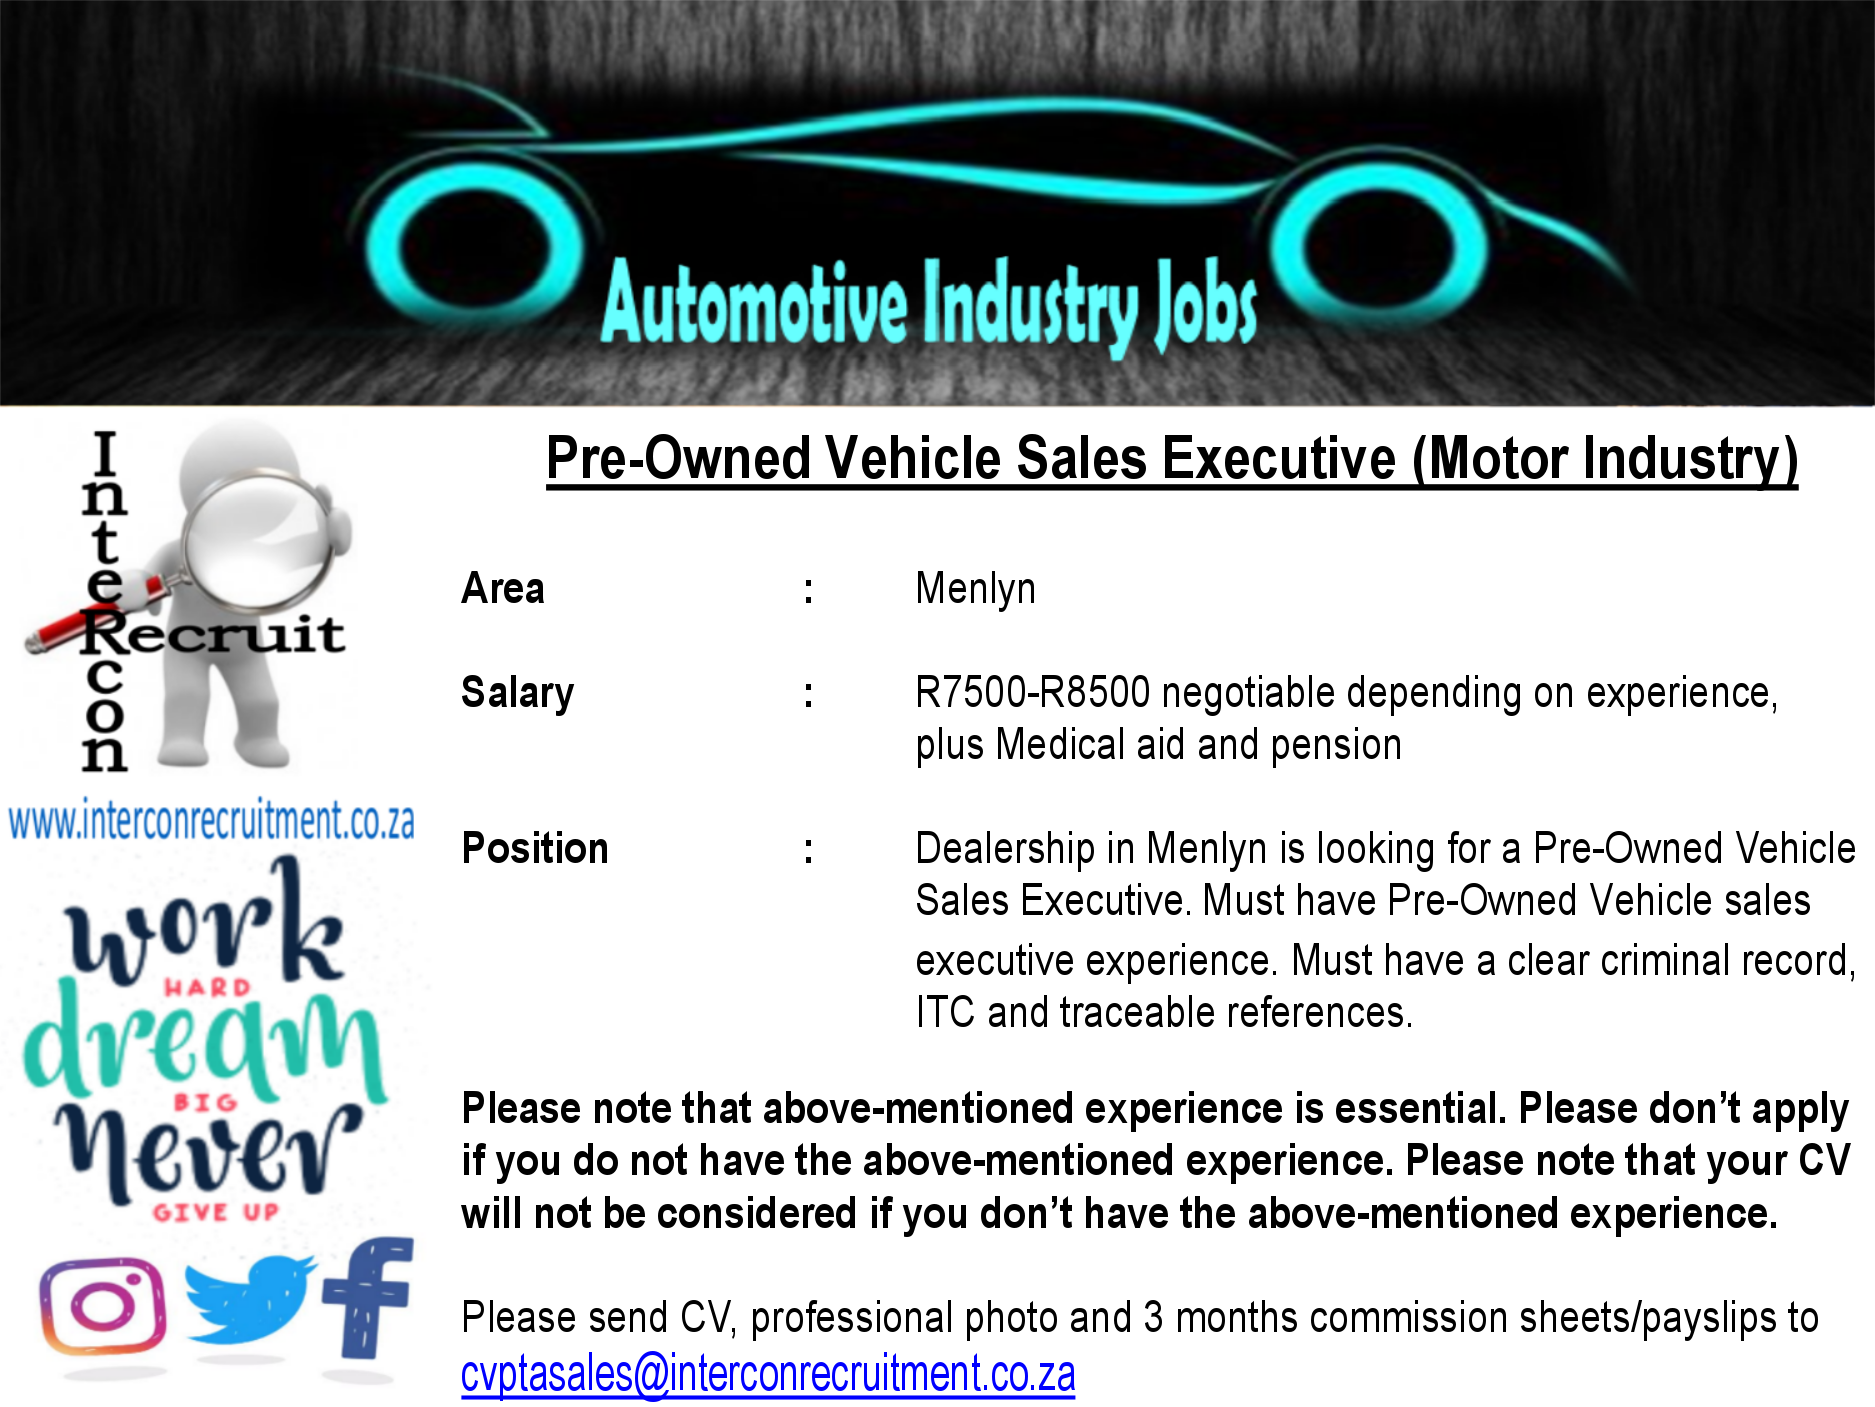 pre-owned vehicle sales executive